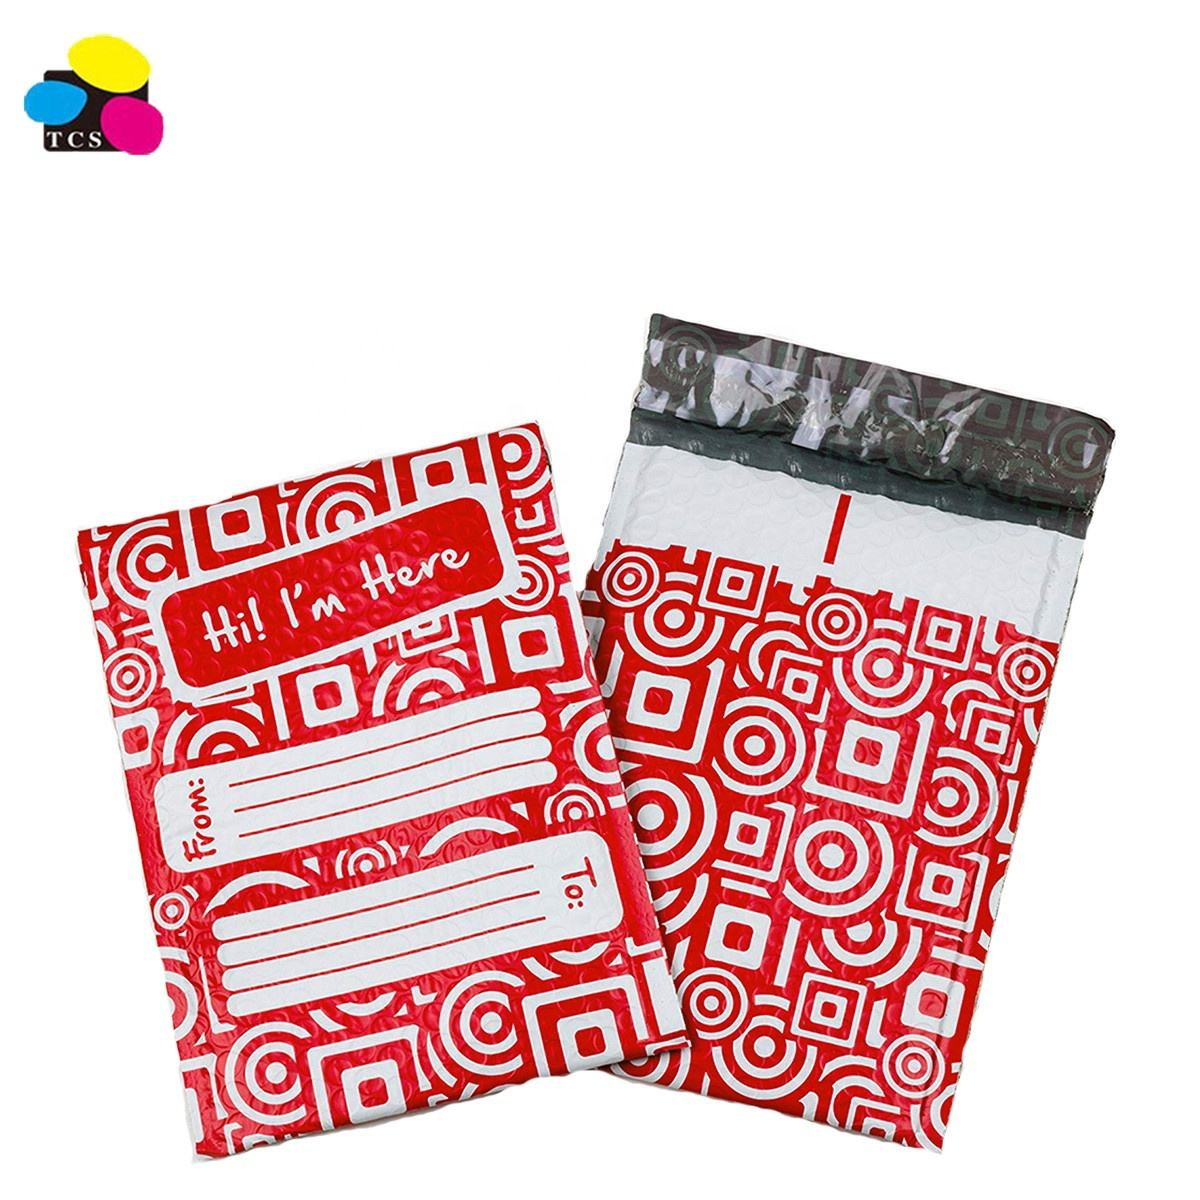 Shanghai Supplier 6x10 Inches Poly Bubble Mailers Pack of 25 Red and White Mailers Padded Envelopes